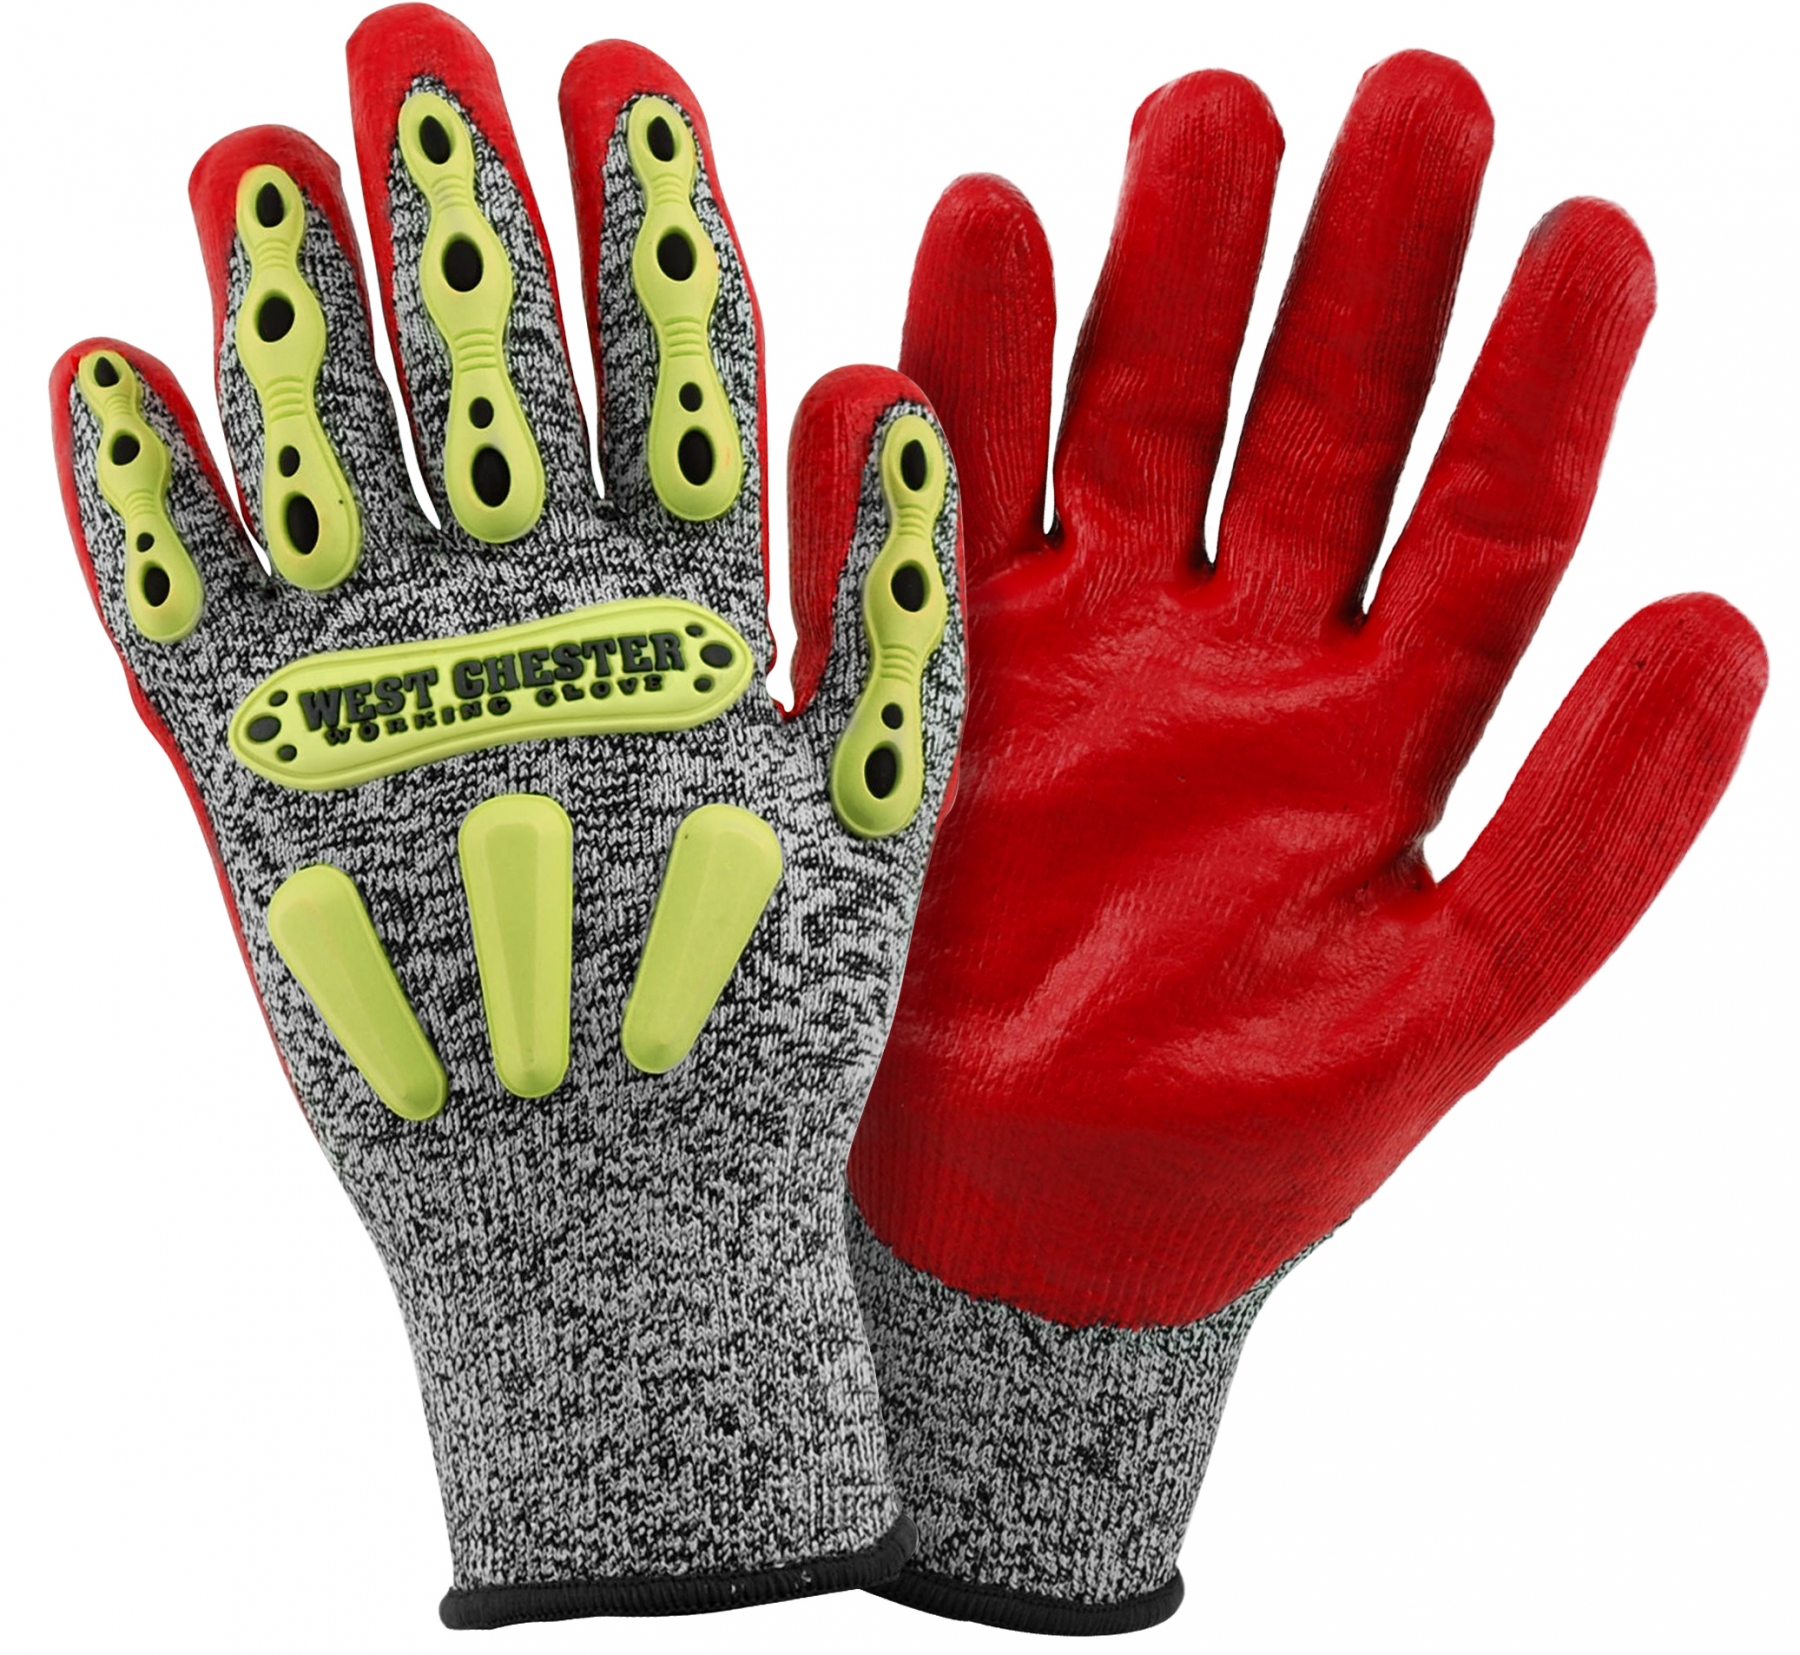 713SN Westchester R2 FLX Knuckle Protection Coated Cut-Resistant Work Gloves, cut level 2